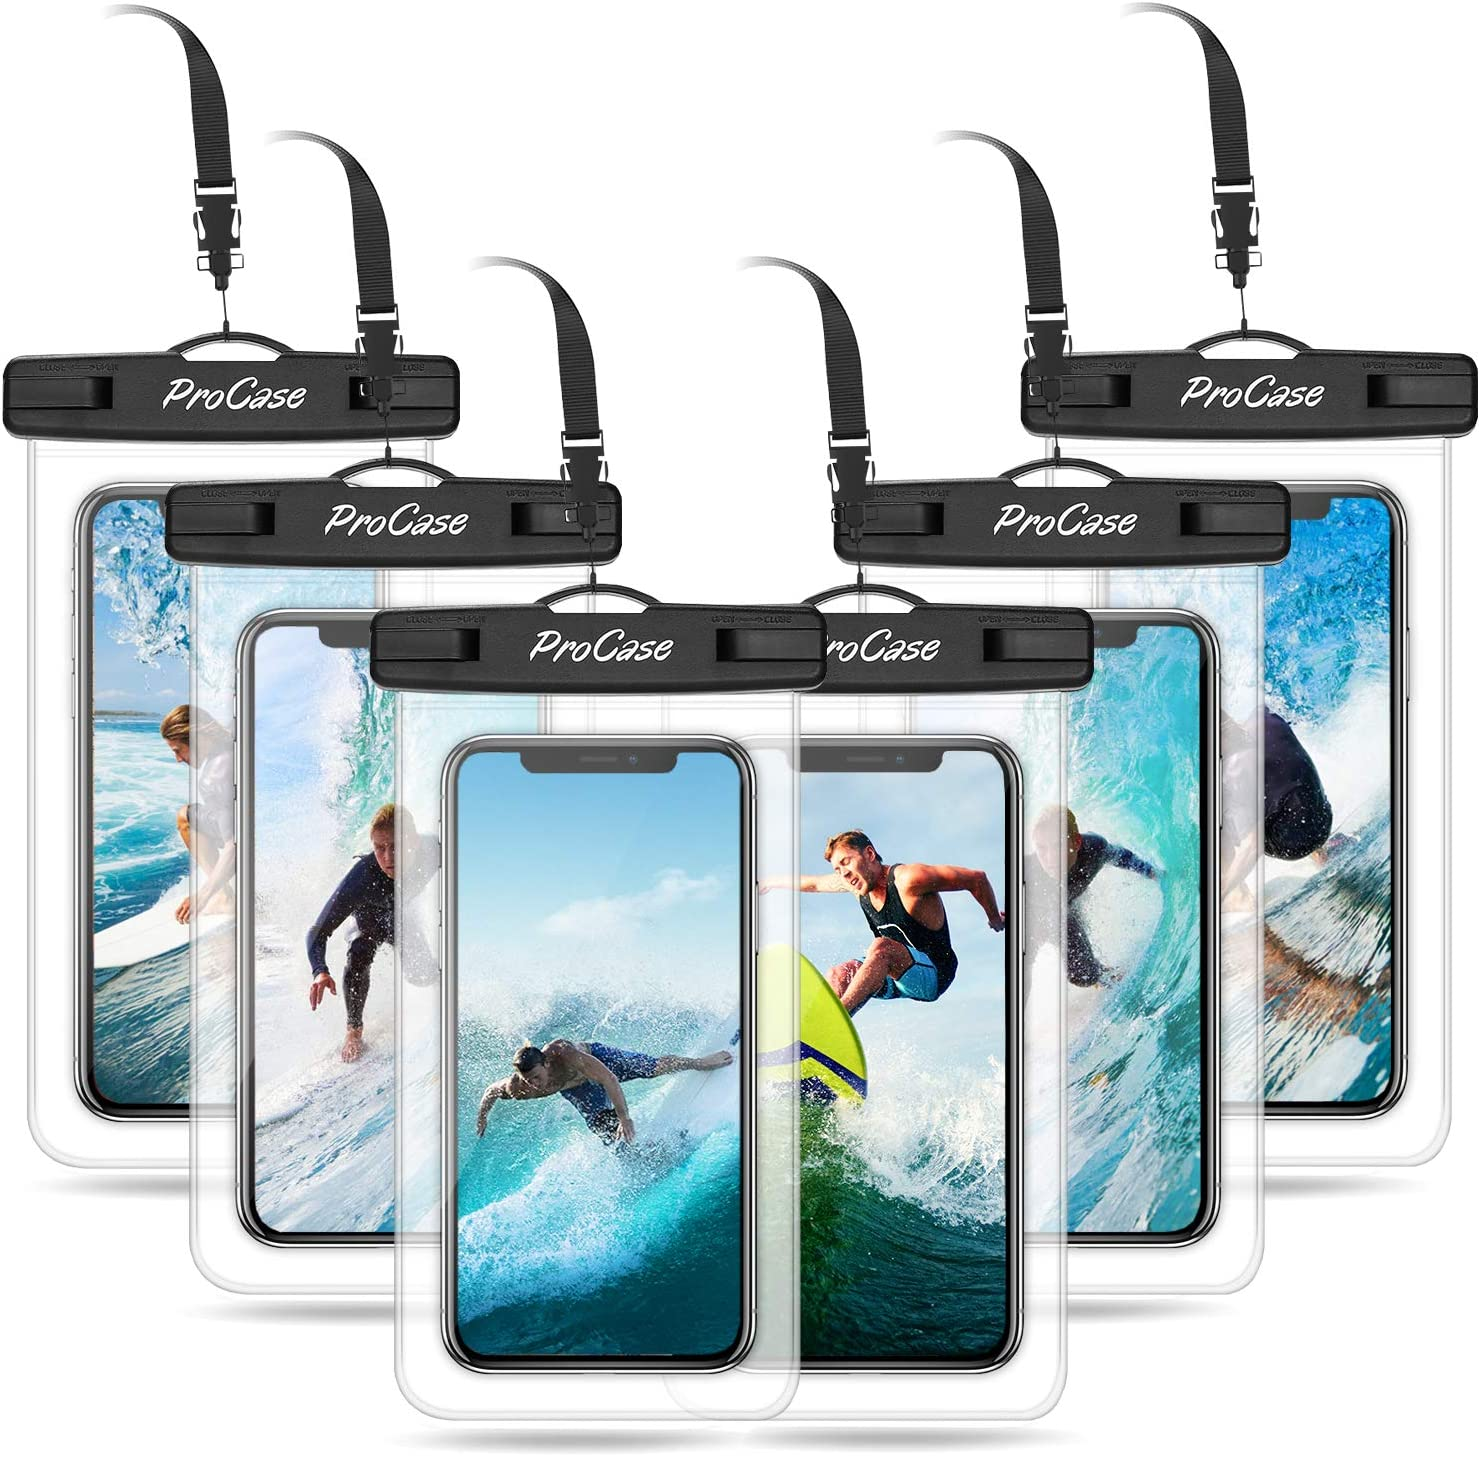 ProCase Universal Waterproof Pouch Cellphone Dry Bag Underwater Case for iPhone 13 Pro Max Mini, 12 11 Pro Max Xs Max XR 8 7 SE Galaxy S20 up to 7